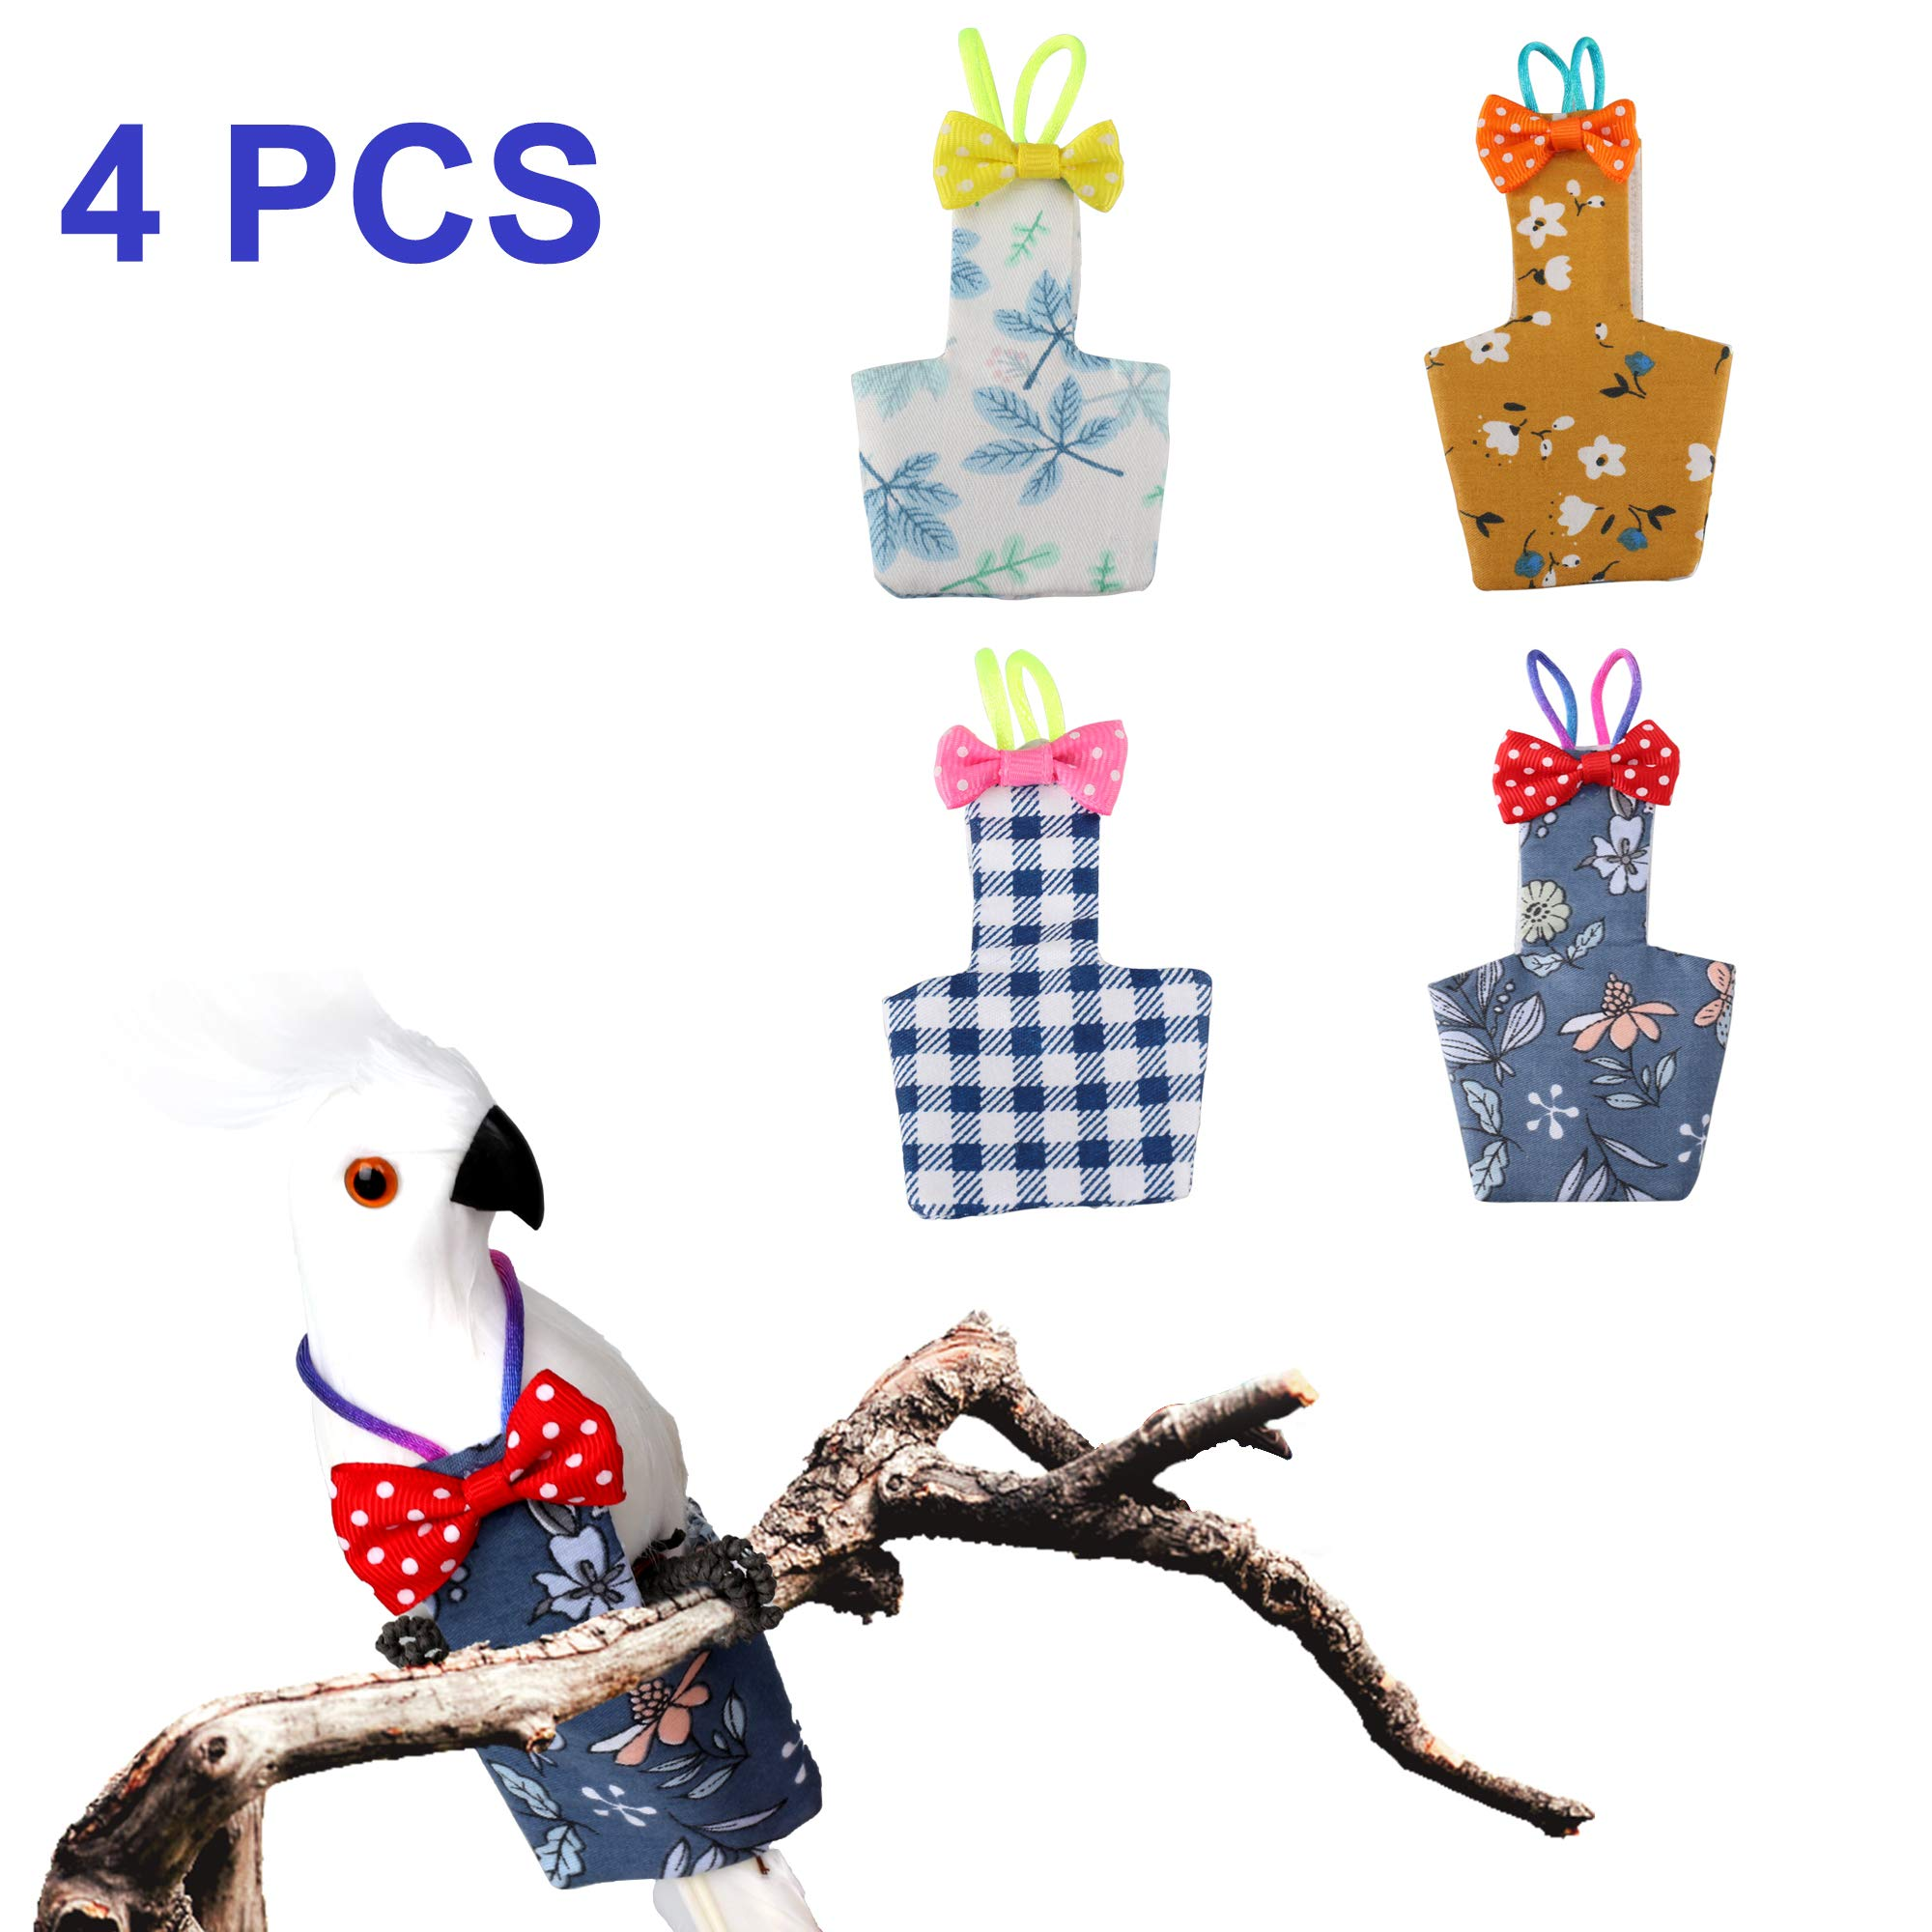 Lovinouse 4PCS Bird Diaper, Reusable Washable Bird Flight Suit for Budgie Parakeet Cockatiel Cockatoo African Macaw (M) by Lovinouse